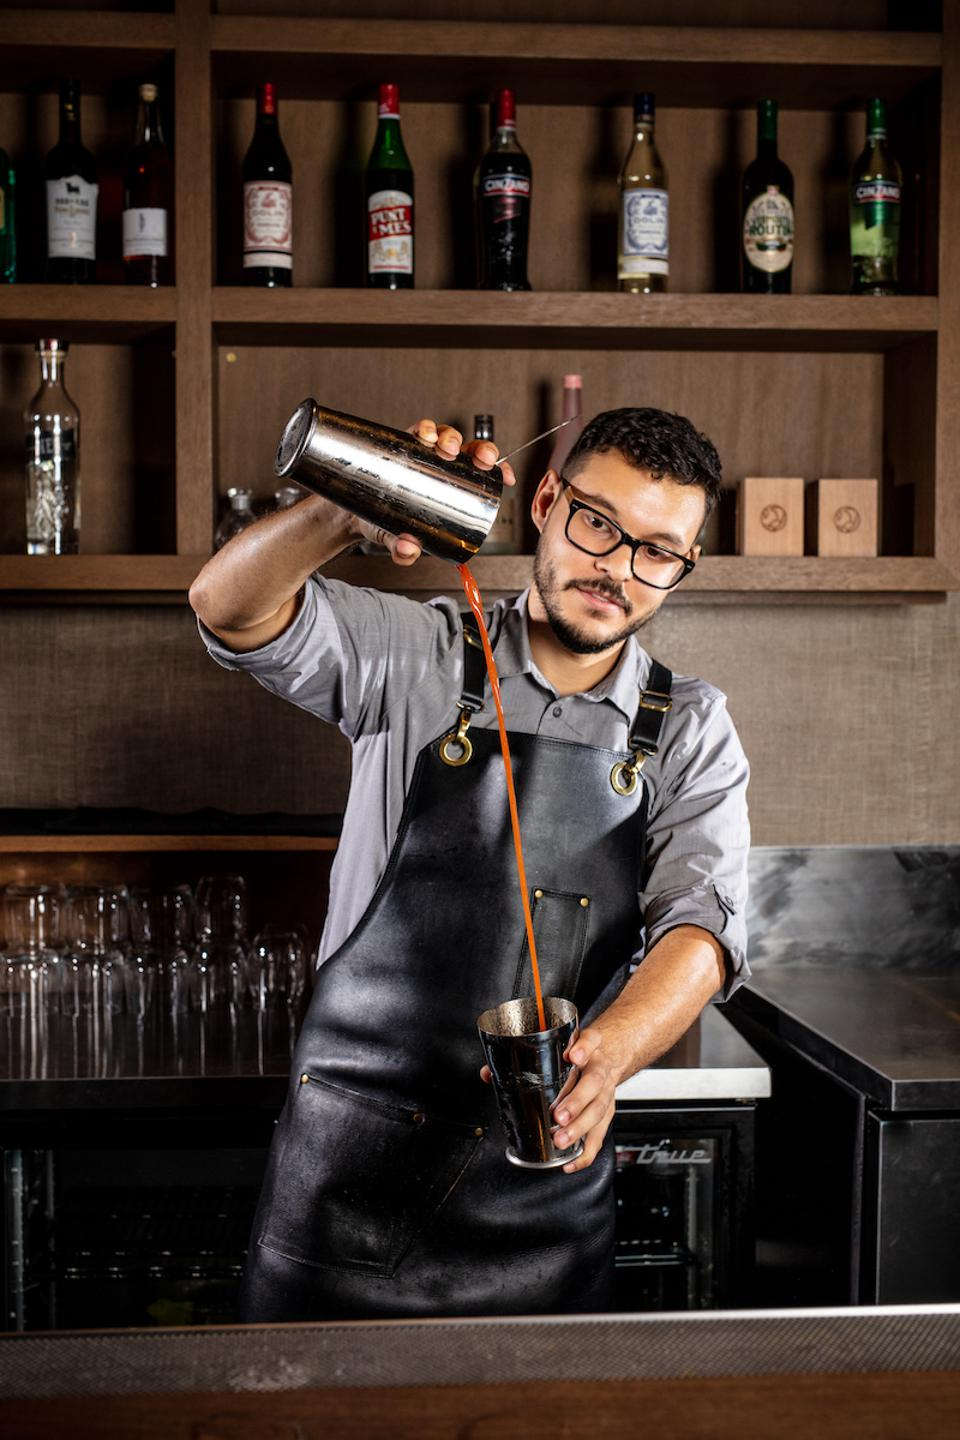 Bartender Joshua Lopez at work